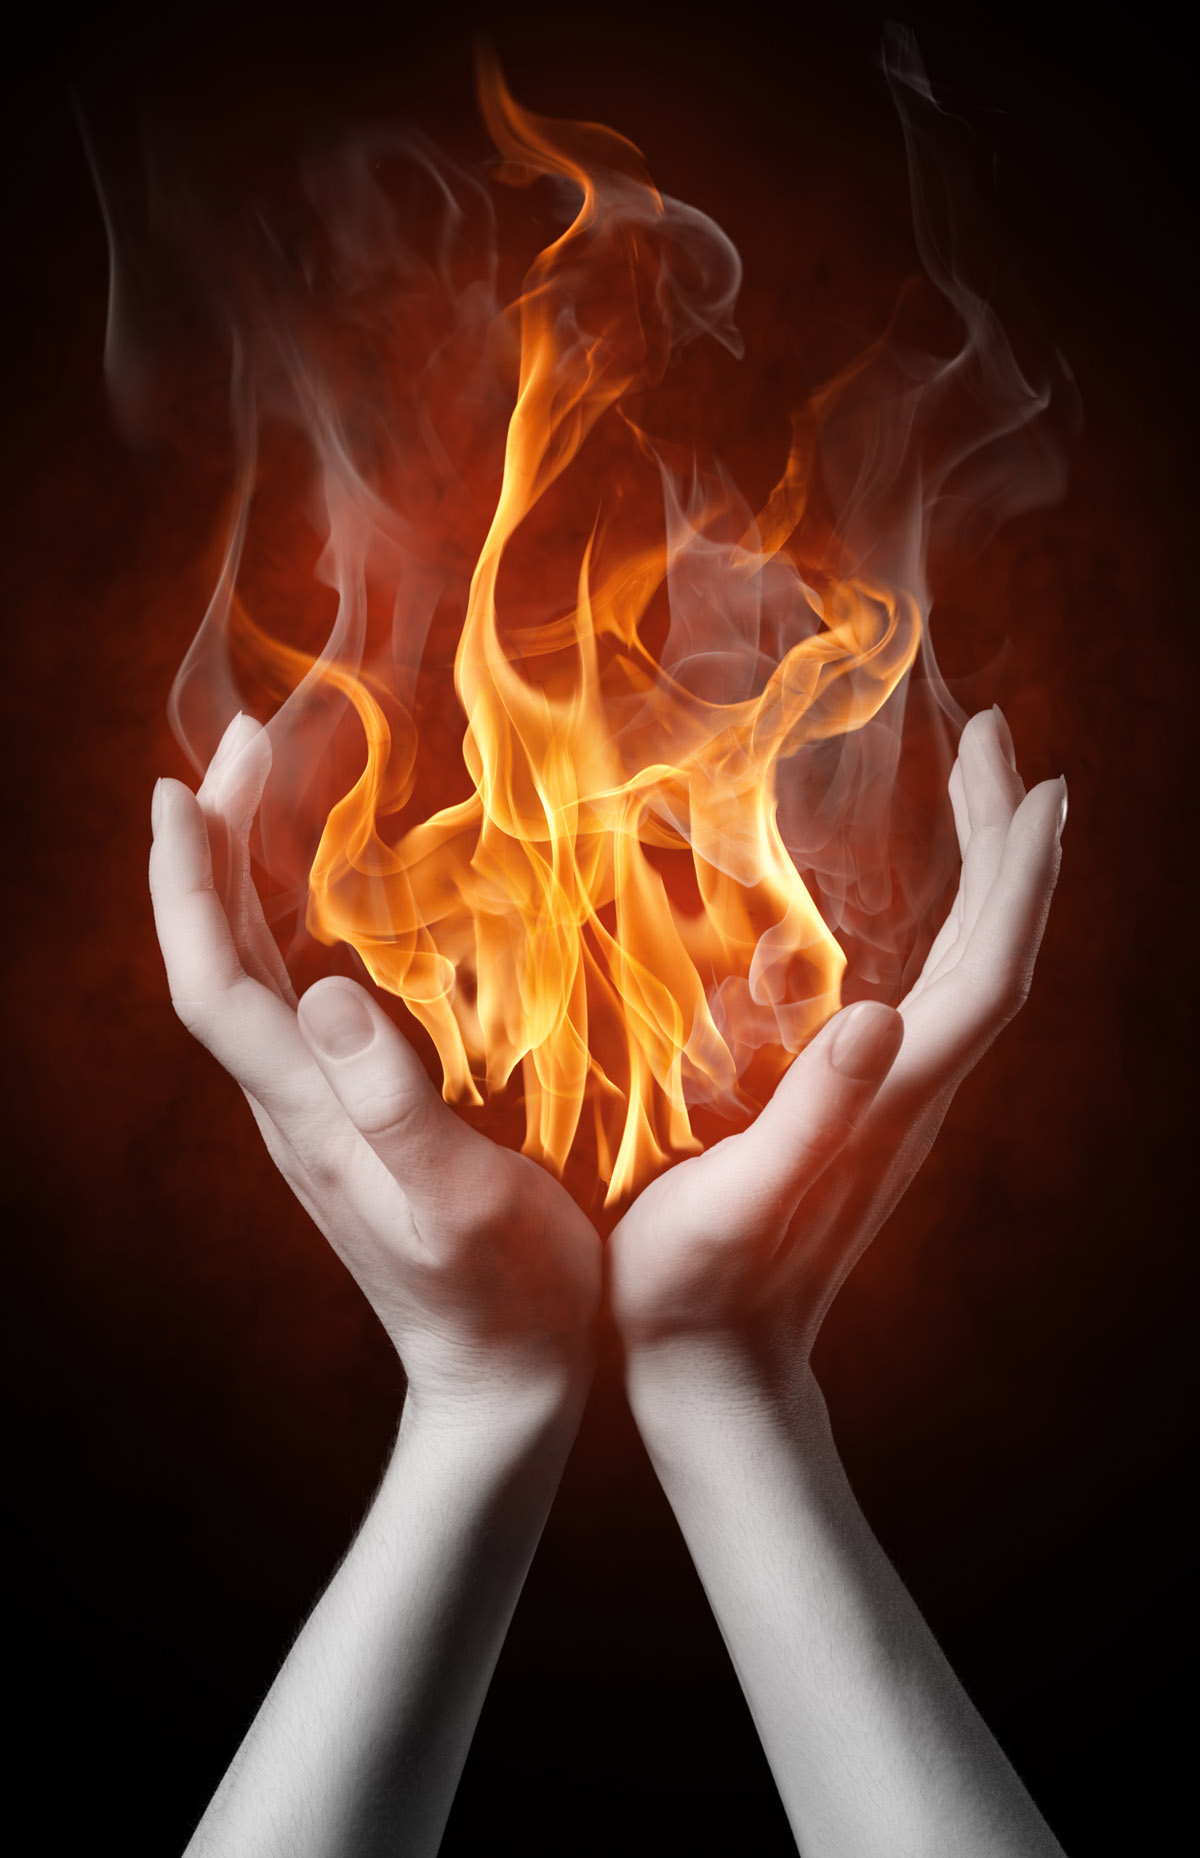 Burning hands 9635